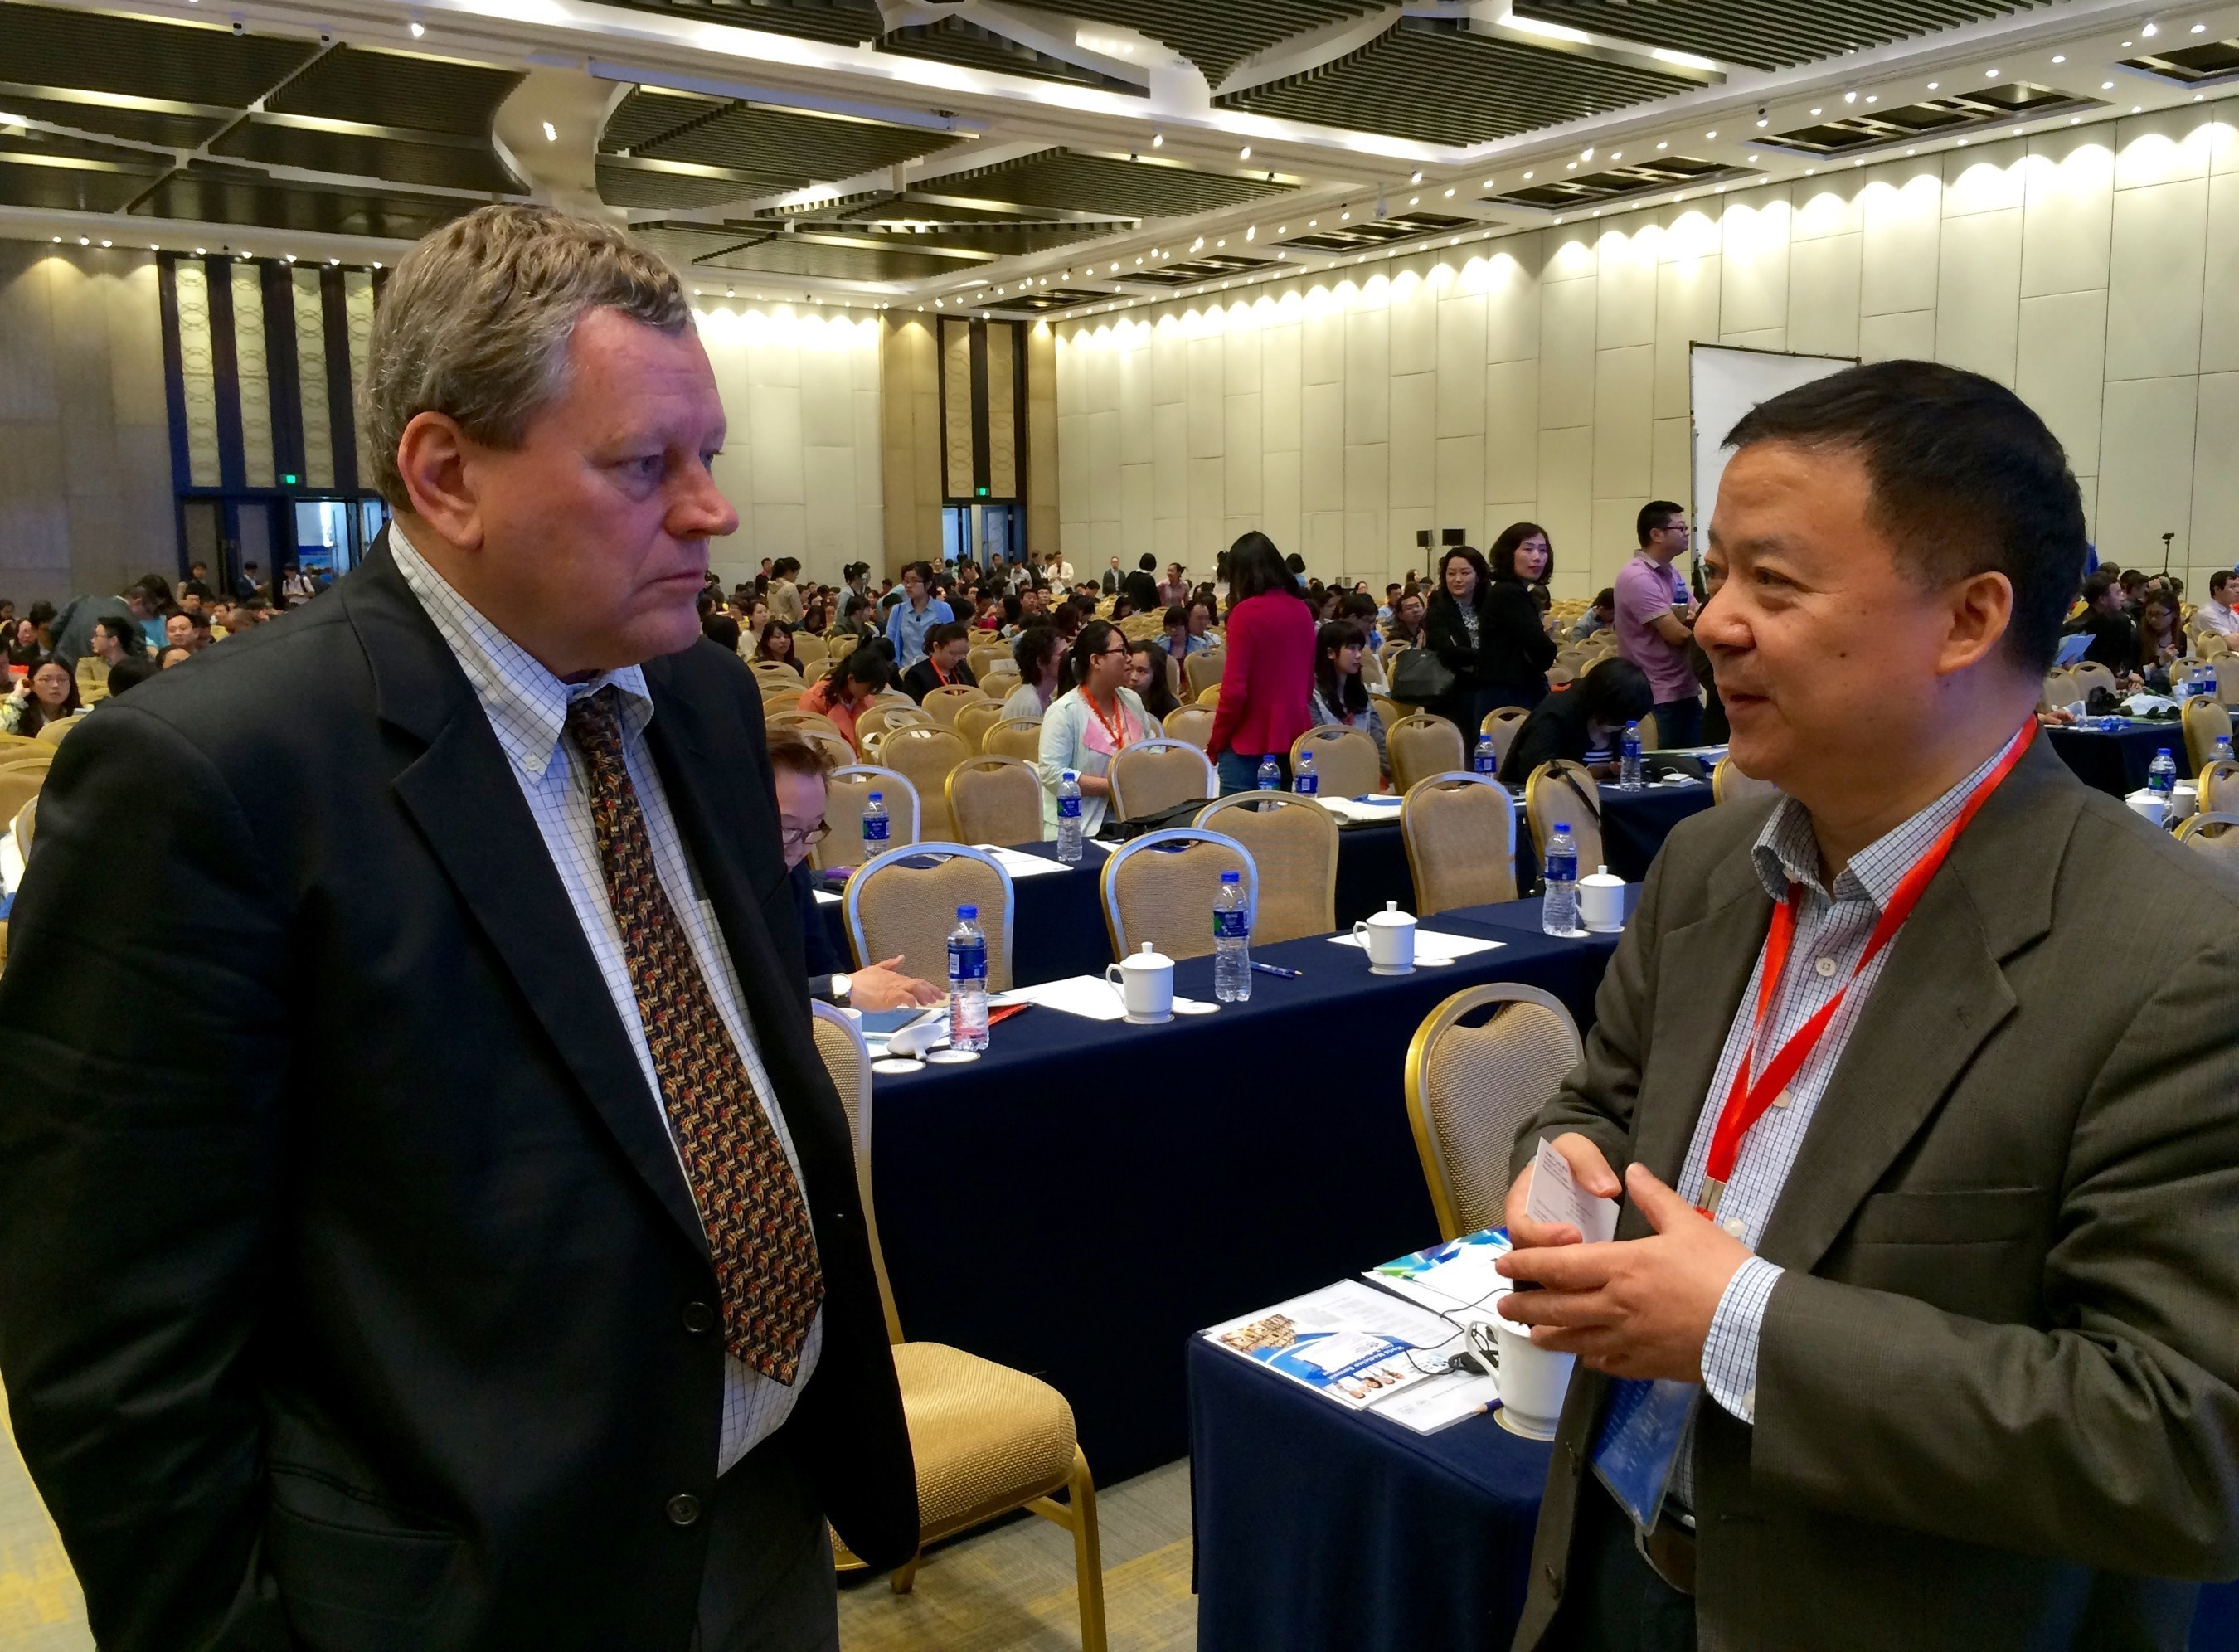 The 2015 Nobel Prize Laureate Summit on Cancer Research (NPLS) in Tianjin, China, hosted five Nobel Laureates and the world's top researchers this week, for an unprecedented sharing of the latest cancer research technology and projections; among them, featured, published presenters (pictured left-to-right) Dr. Webster Cavenee, Director, Ludwig Institute for Cancer Research in San Diego; and Dr. Chris Yu, CEO of Anpac Bio-Medical Science Company in Shanghai China and Sacramento, CA. ...